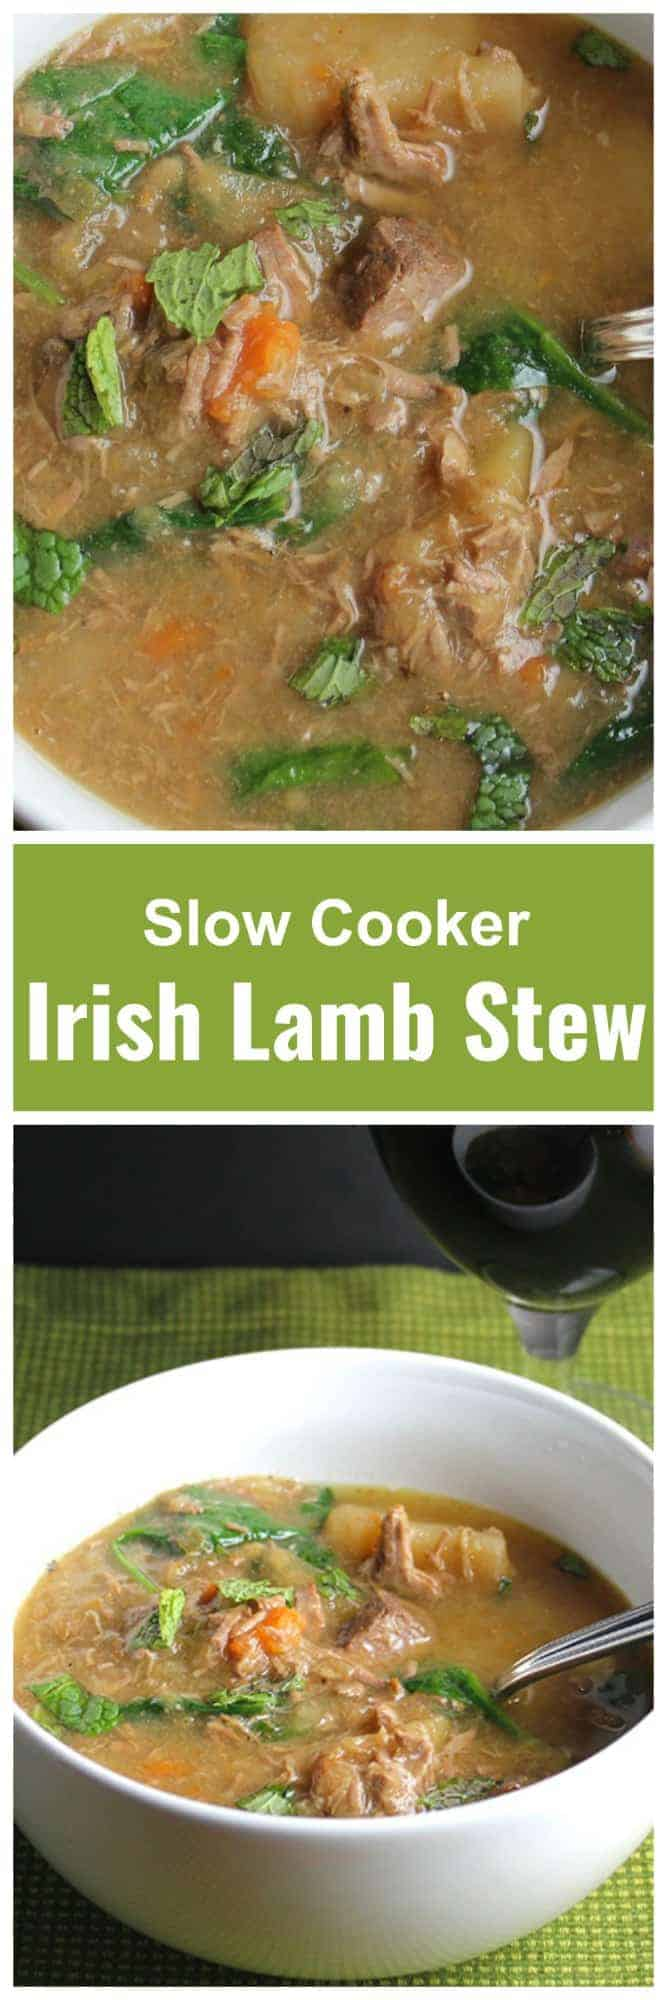 Traditional Irish Lamb Stew in the slow cooker features fall apart tender meat and favorite Irish vegetables. #SundaySupper #SlowCooker #IrishStew